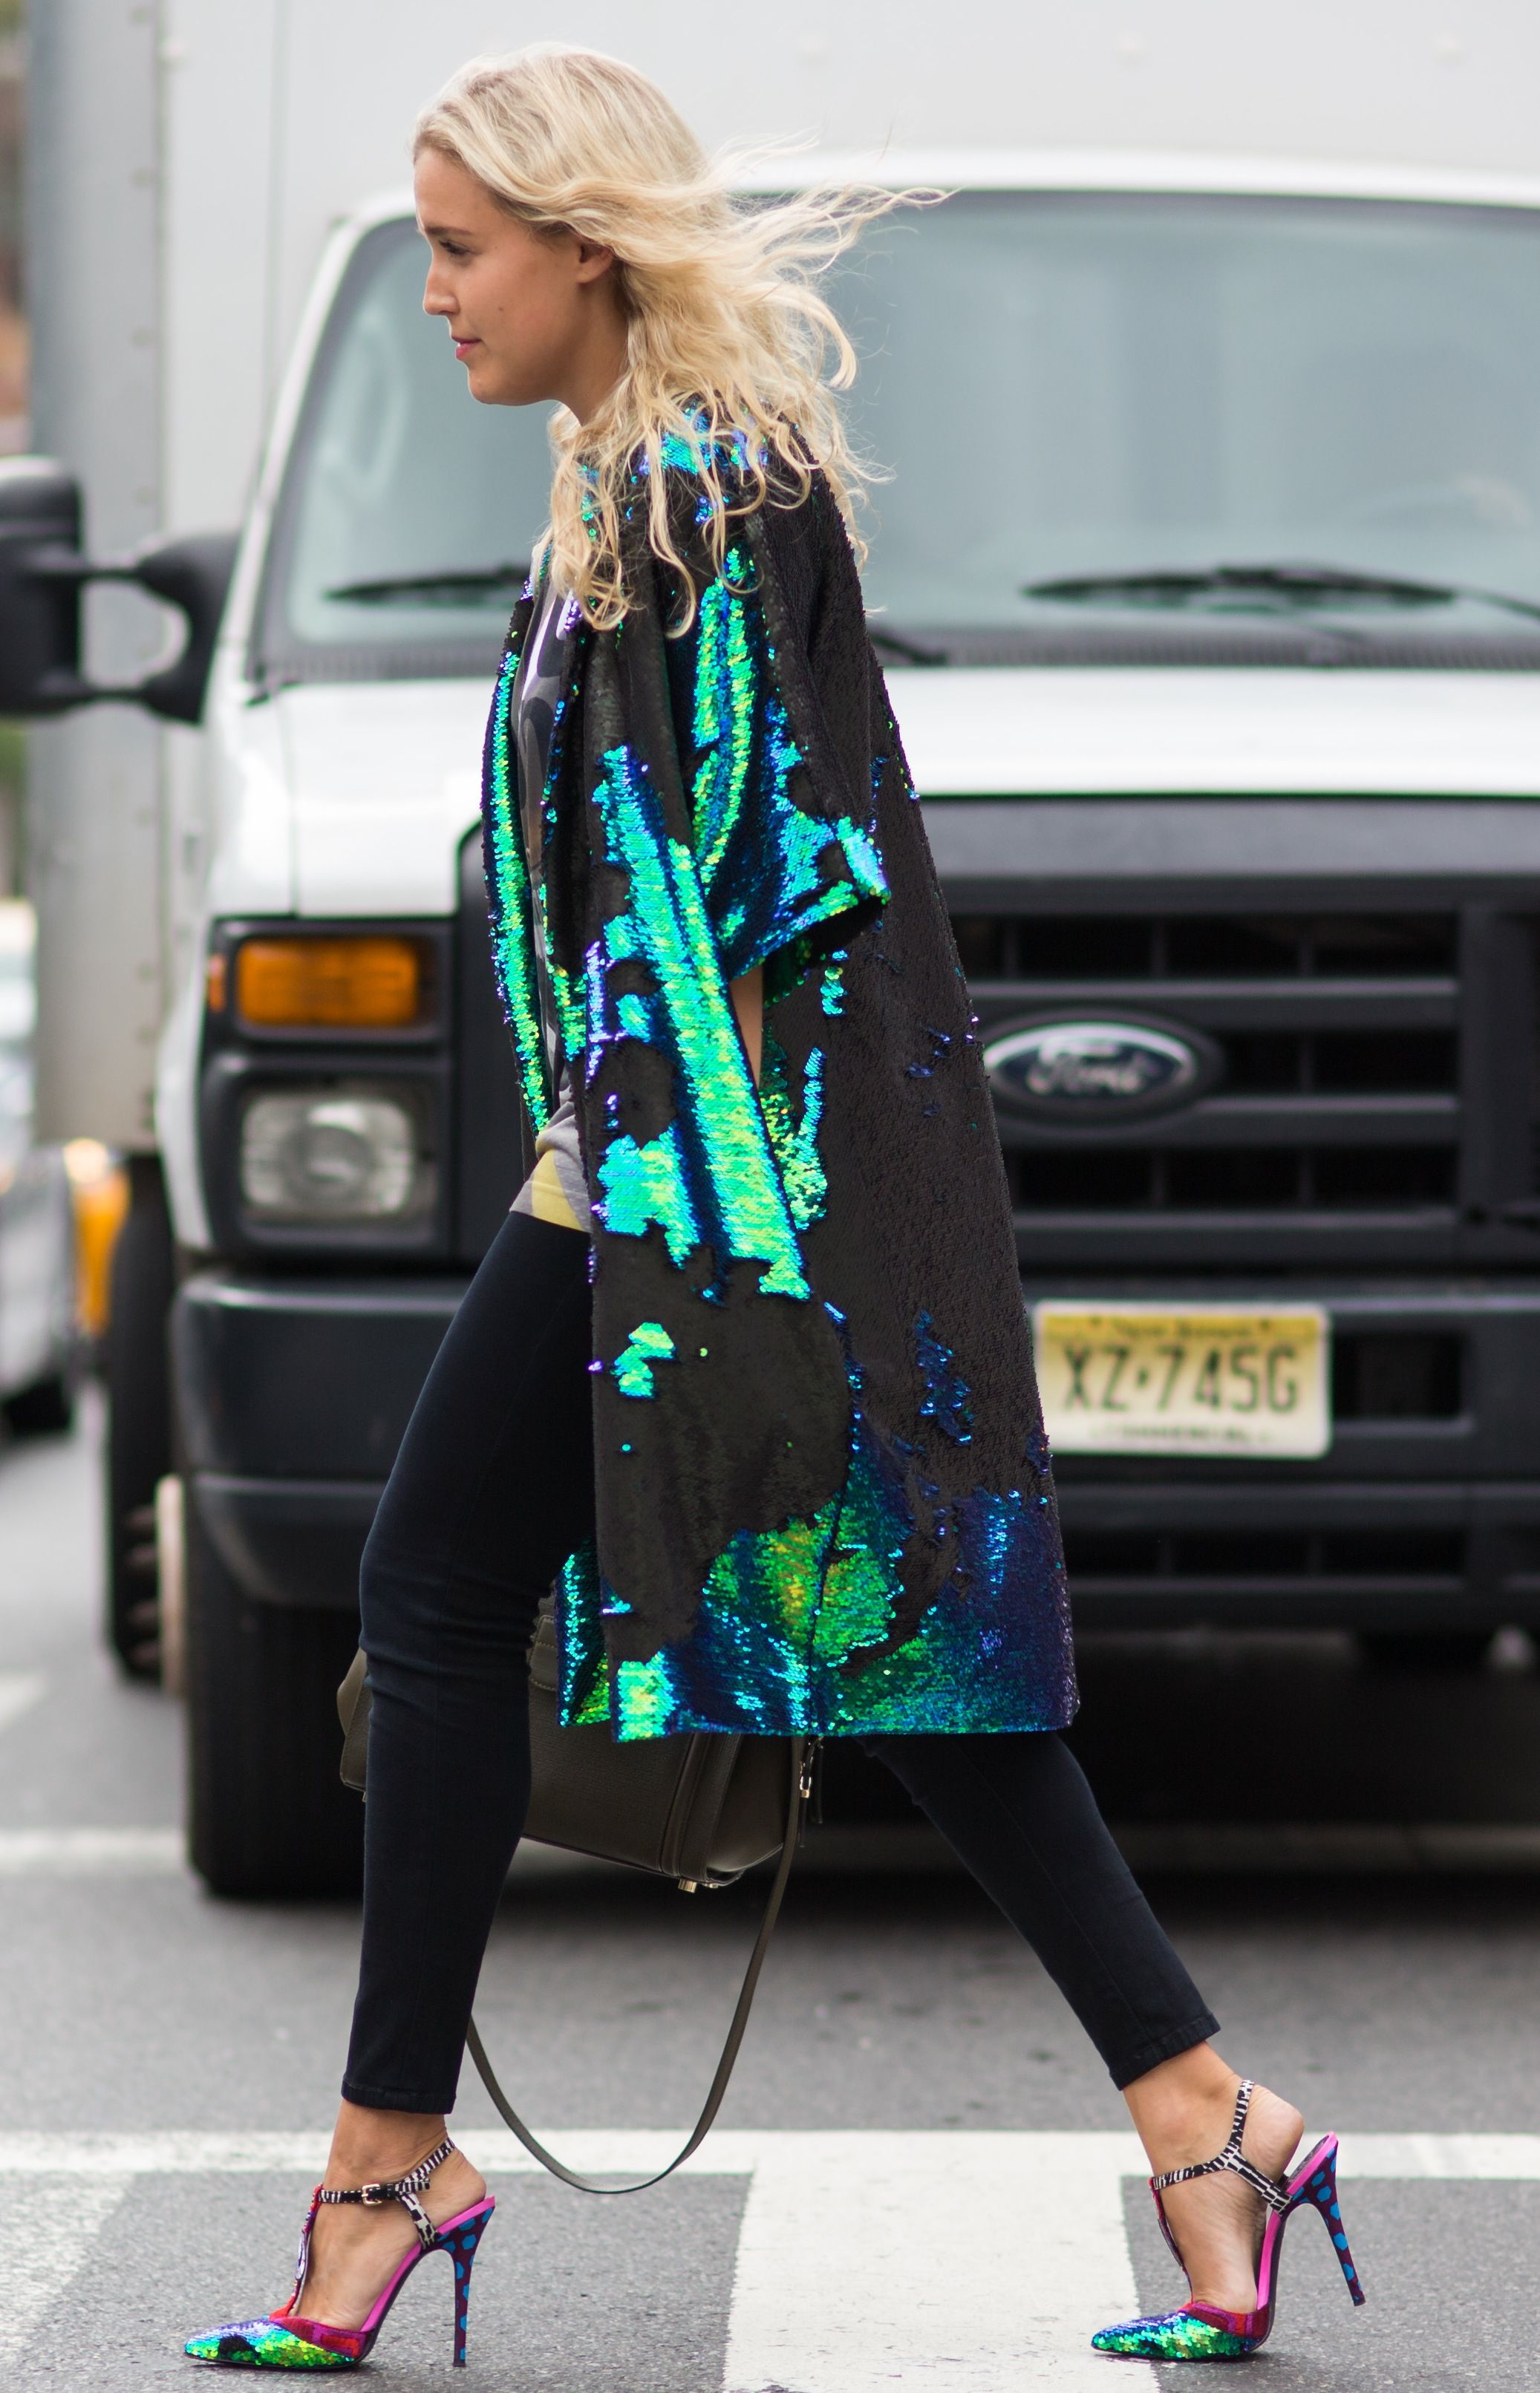 81879641398f7 Blue-green sequin coat/jeans/heels/street style | adornment ...